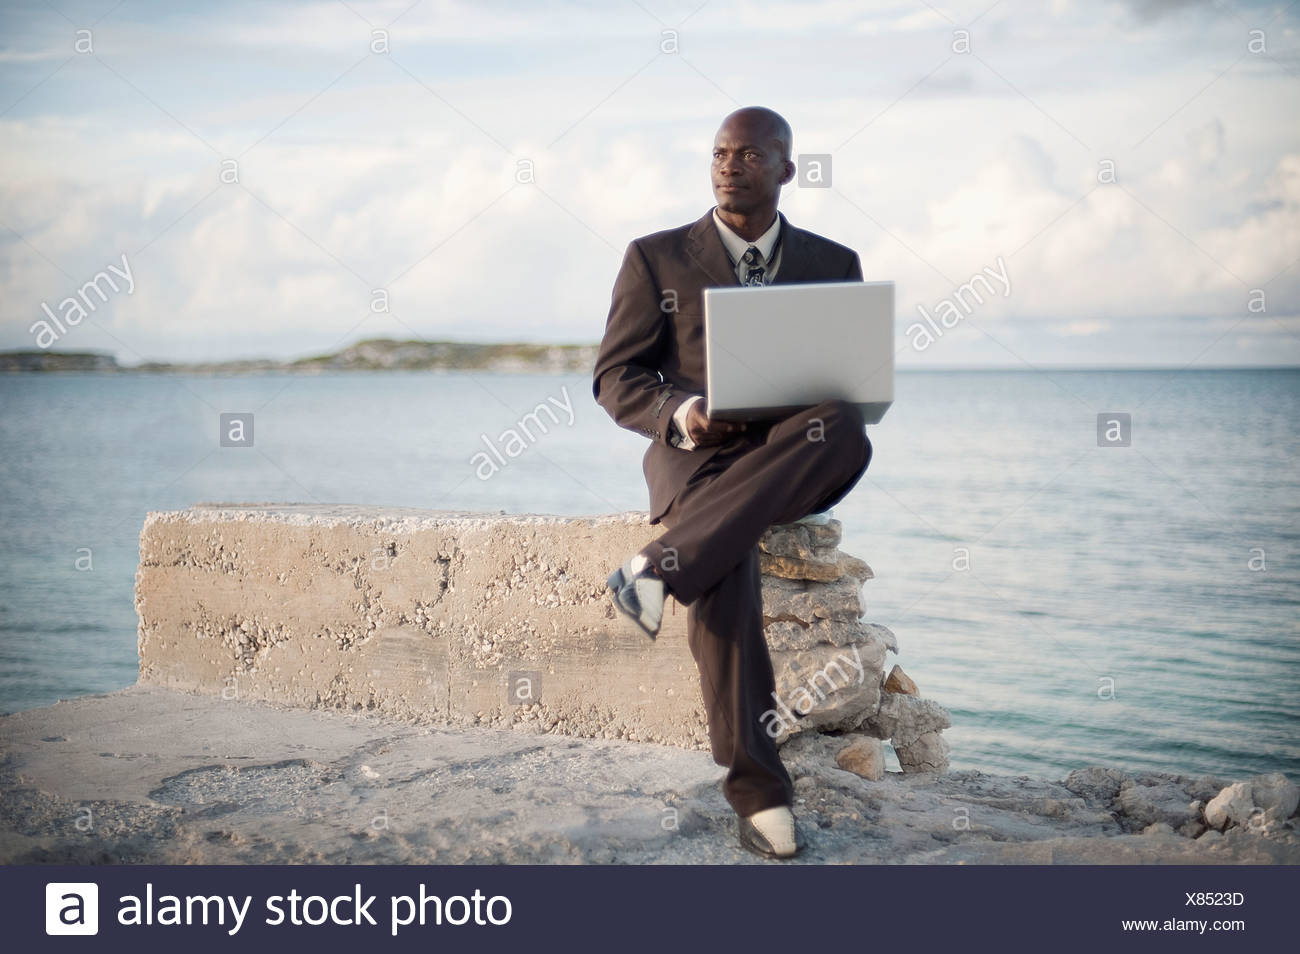 A Businessman With A Laptop Computer Sitting On A Rock Ledge At The Edge Of The Water; South Caicos Turks And Caicos Islands - Stock Image